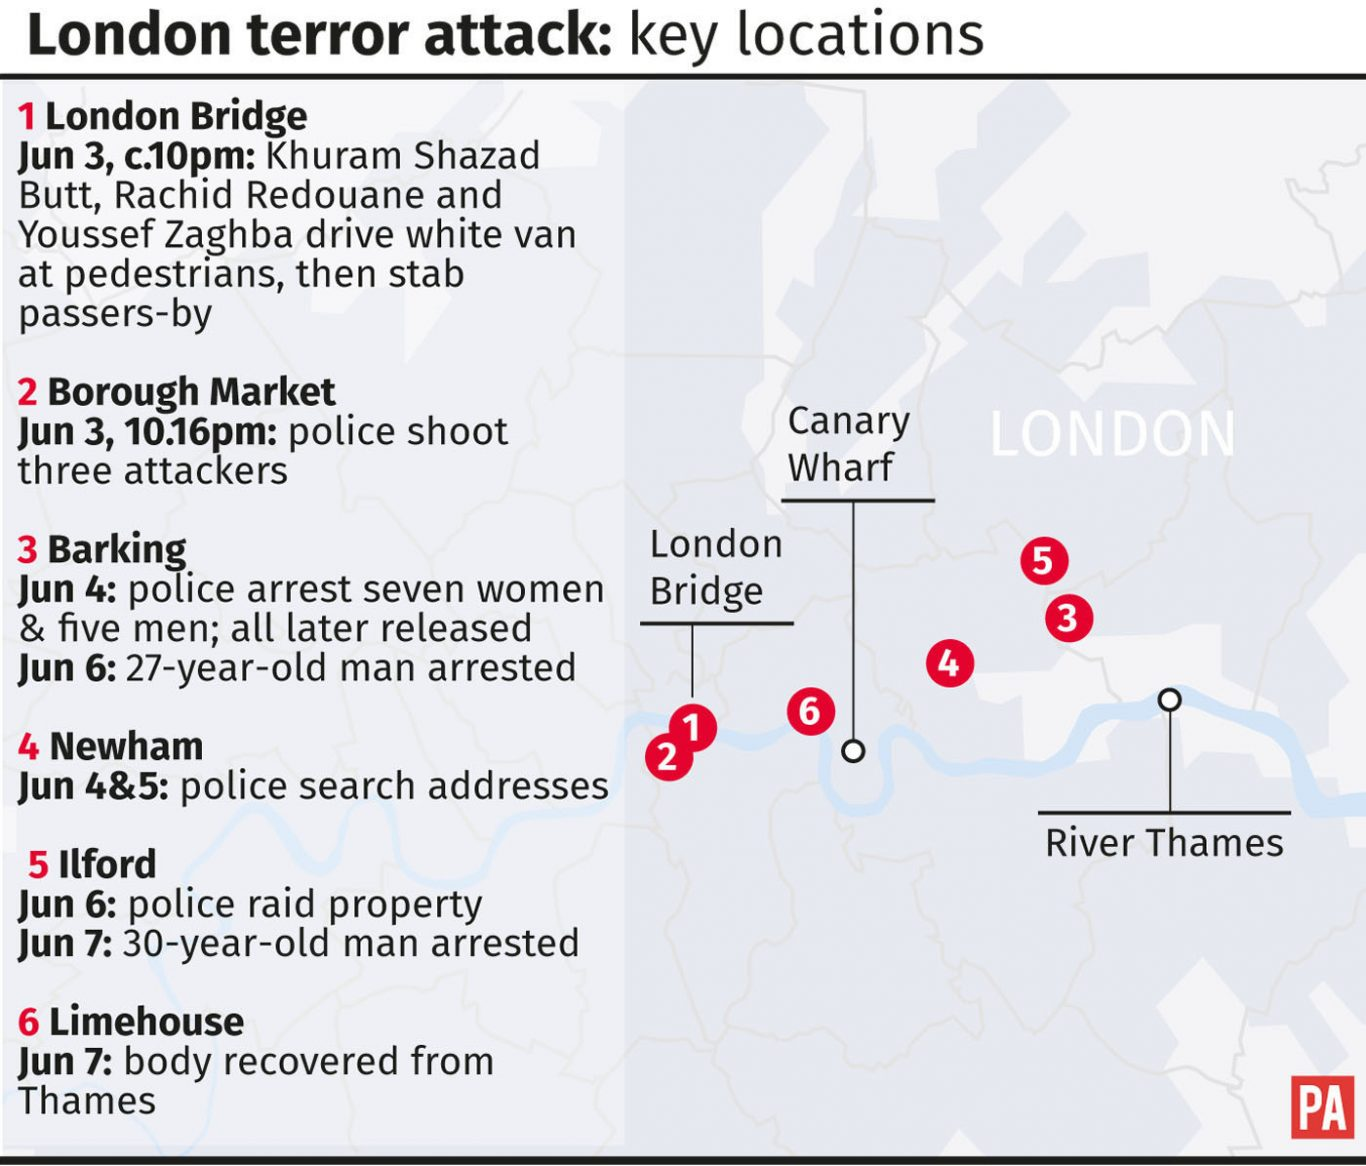 Pressure on authorities intensifies as London death toll rises to 8